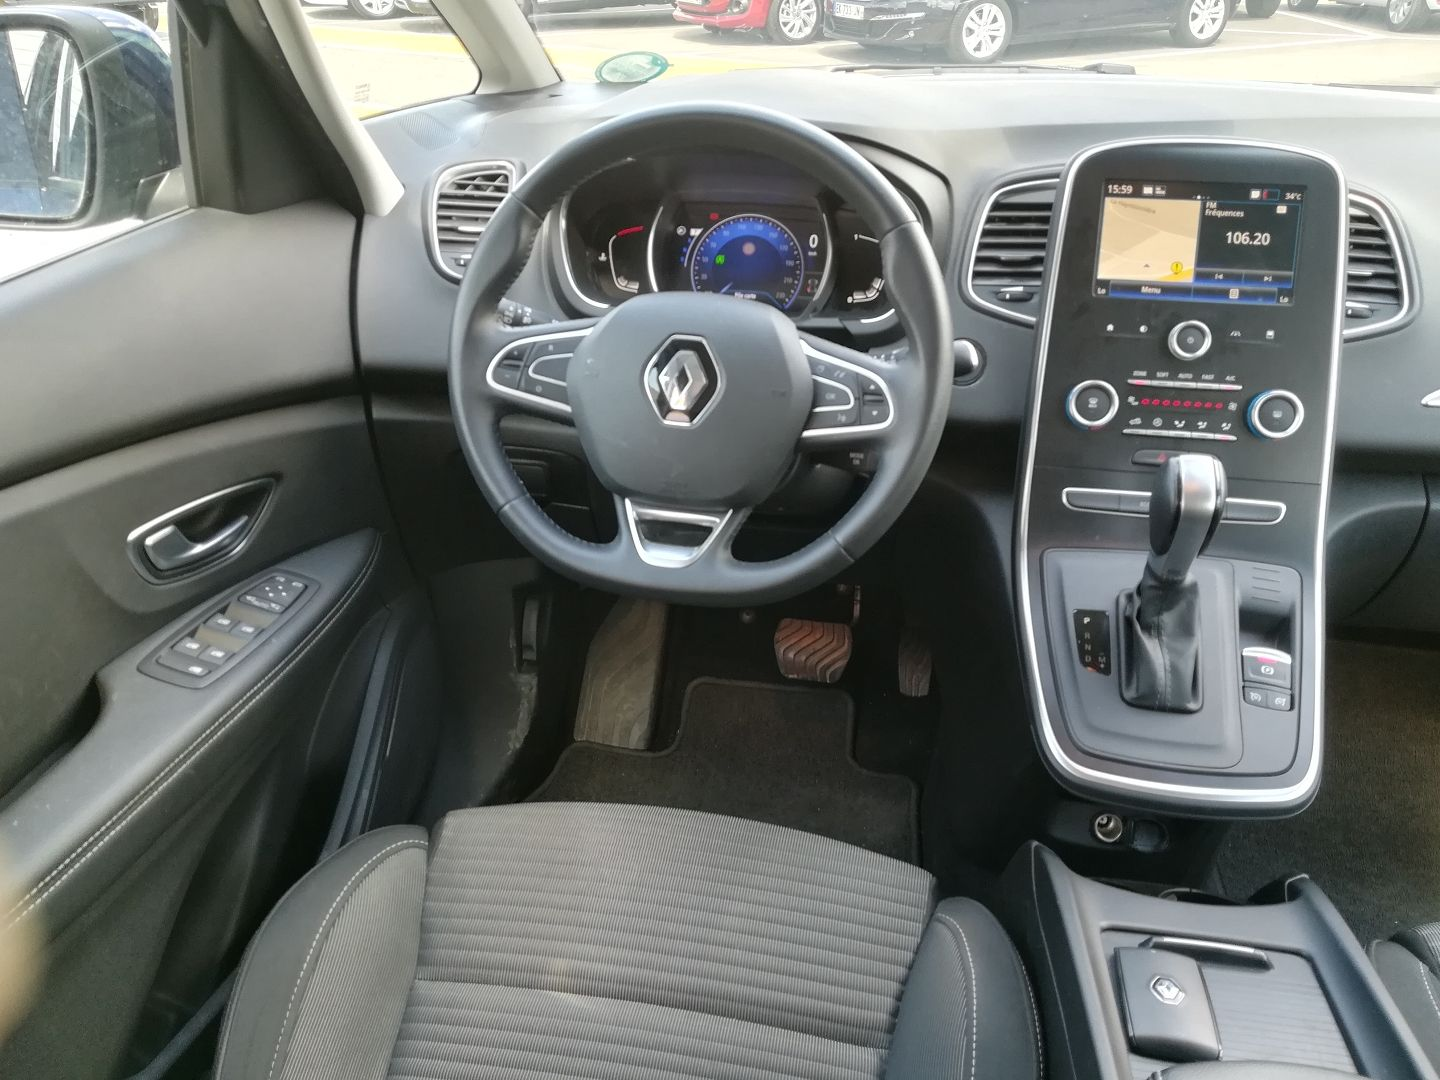 RENAULT GRAND SCENIC IV 1.5 DCI 110CH ENERGY BUSINESS EDC 7 PLACES